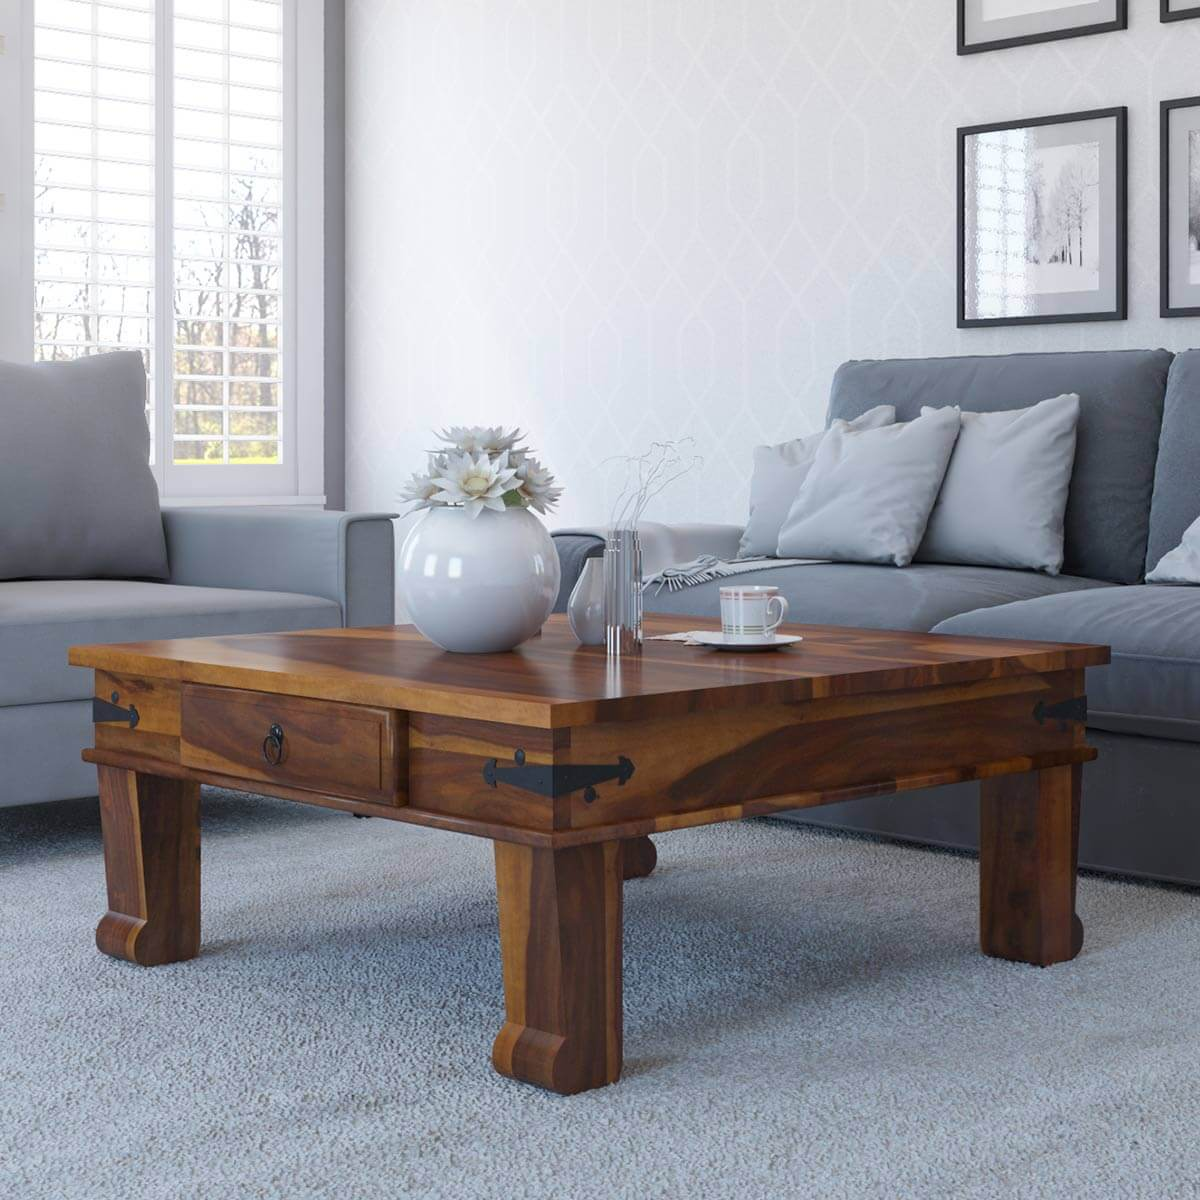 Terrarum Solid Wood Square Coffee Table With Drawer